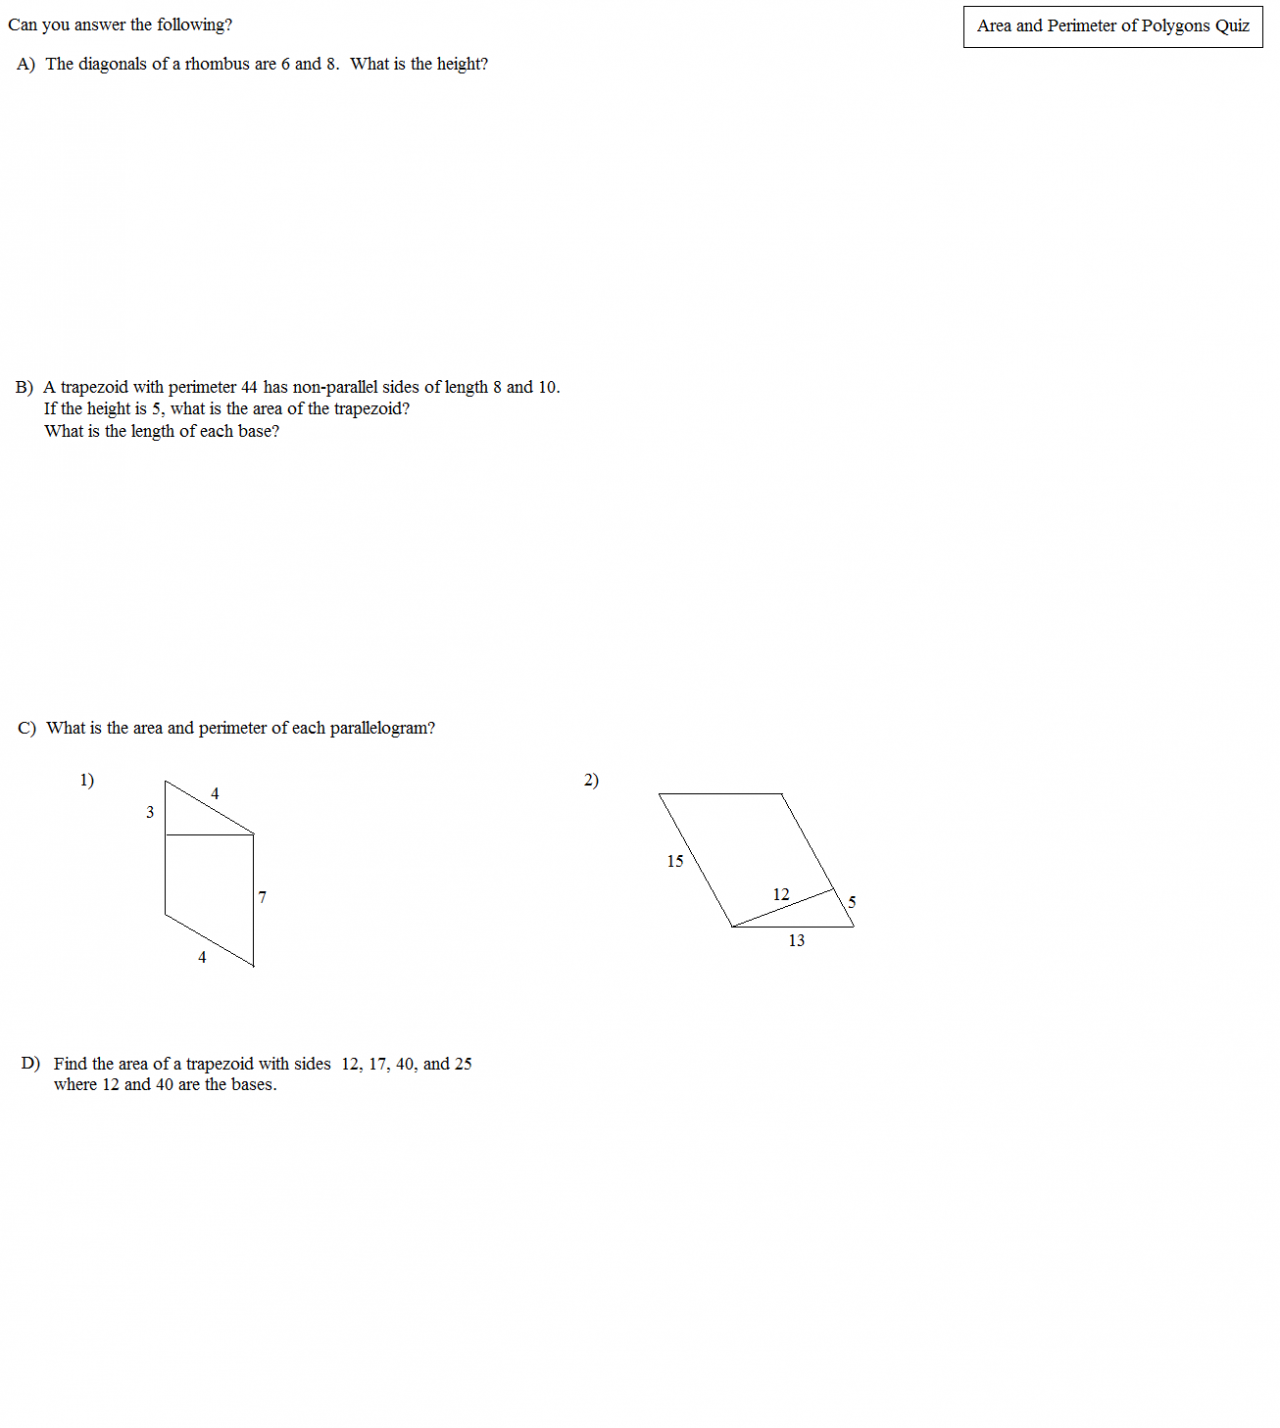 Math Plane Area And Perimeter Of Polygons 1